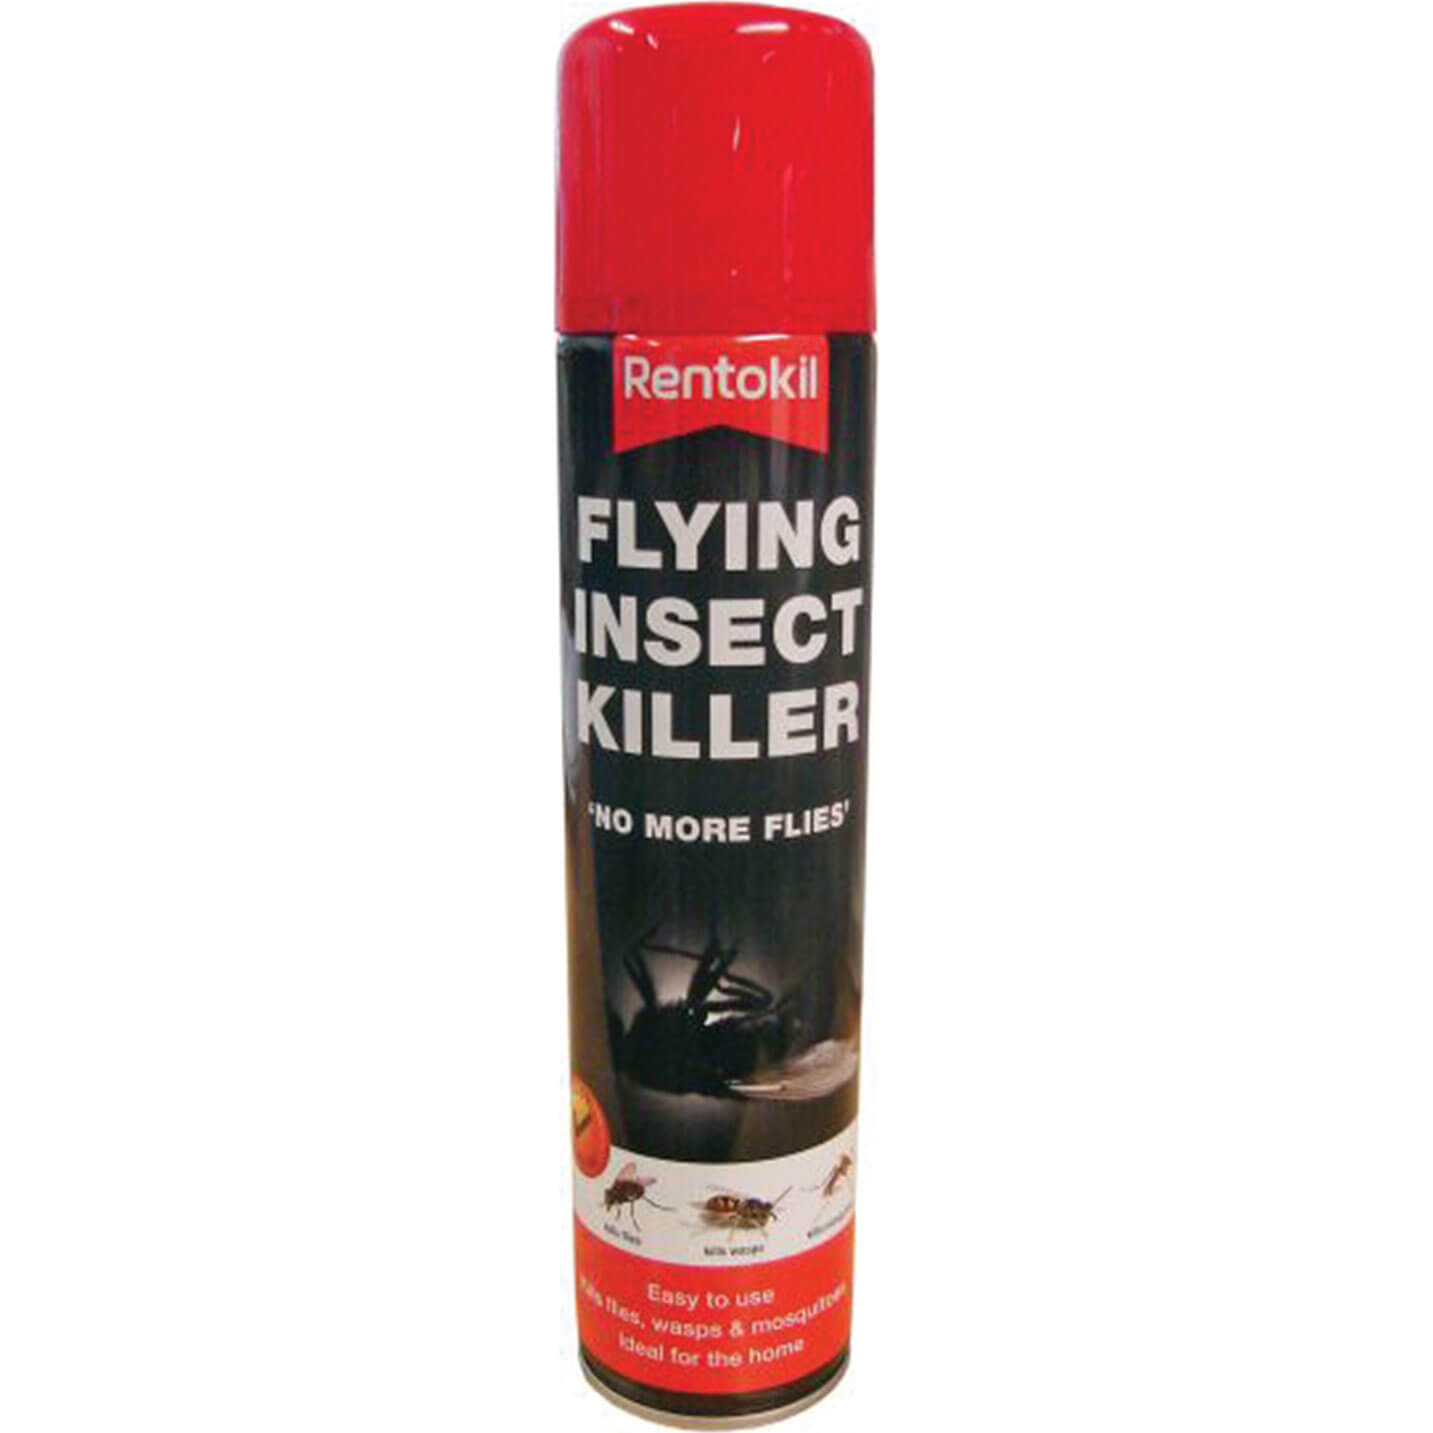 Image of Rentokil Flying Insect Killer